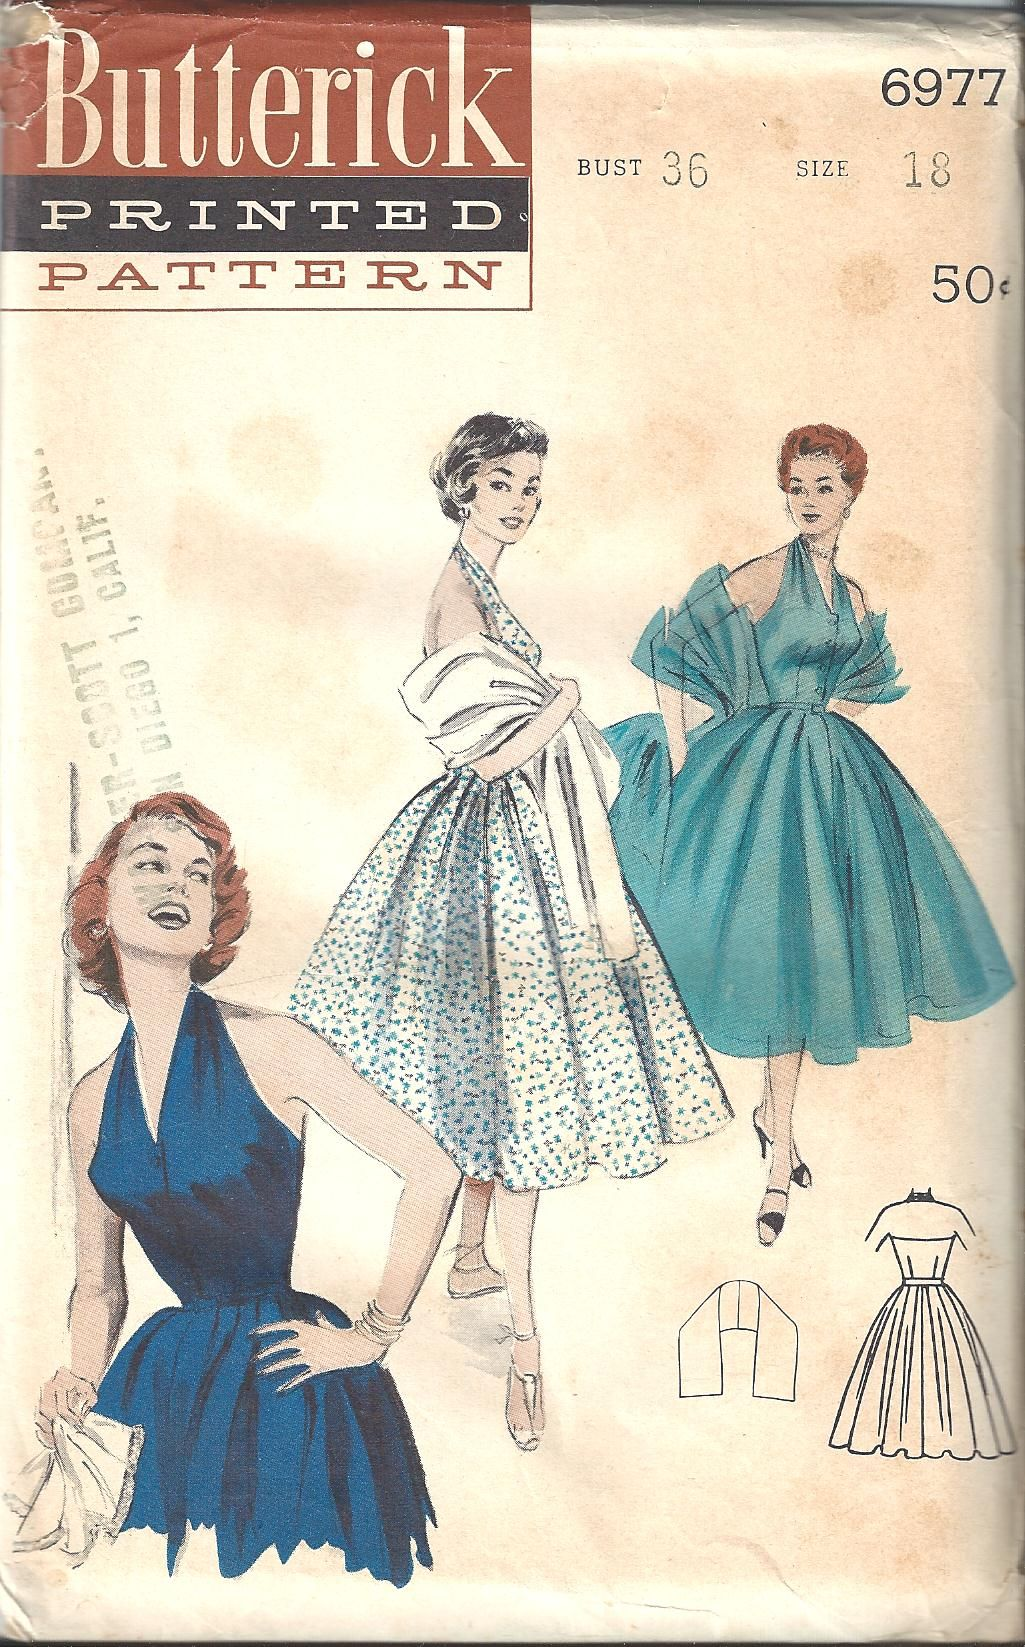 Vintage Sewing Pattern Dress Butterick 6977 | paper, printables and ...